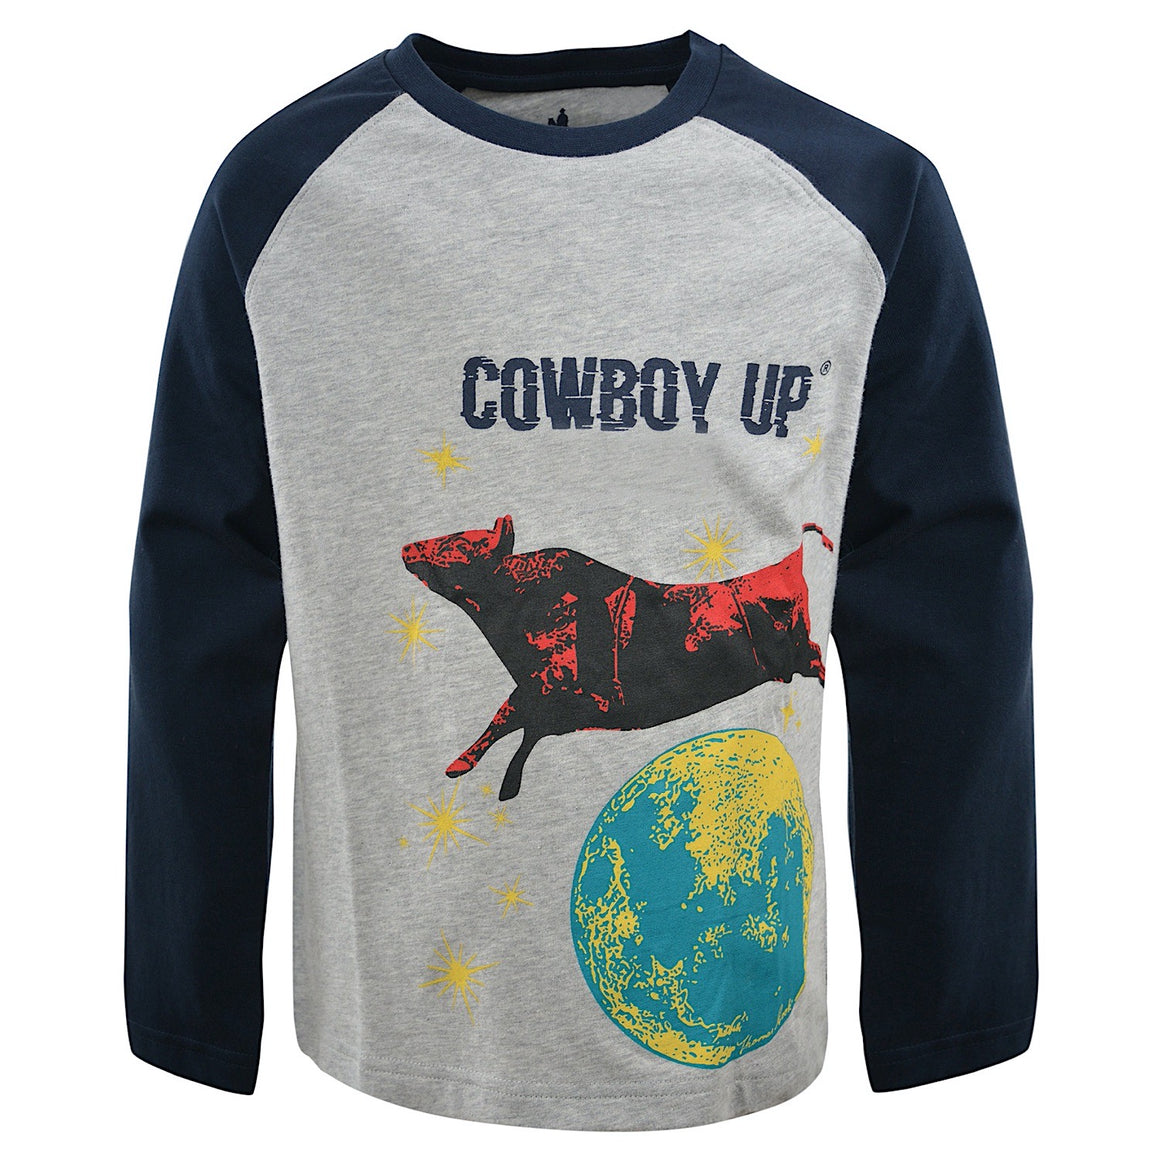 Thomas Cook Boys Cowboy Up Glow-In-The-Dark PJs Navy/Grey Marle